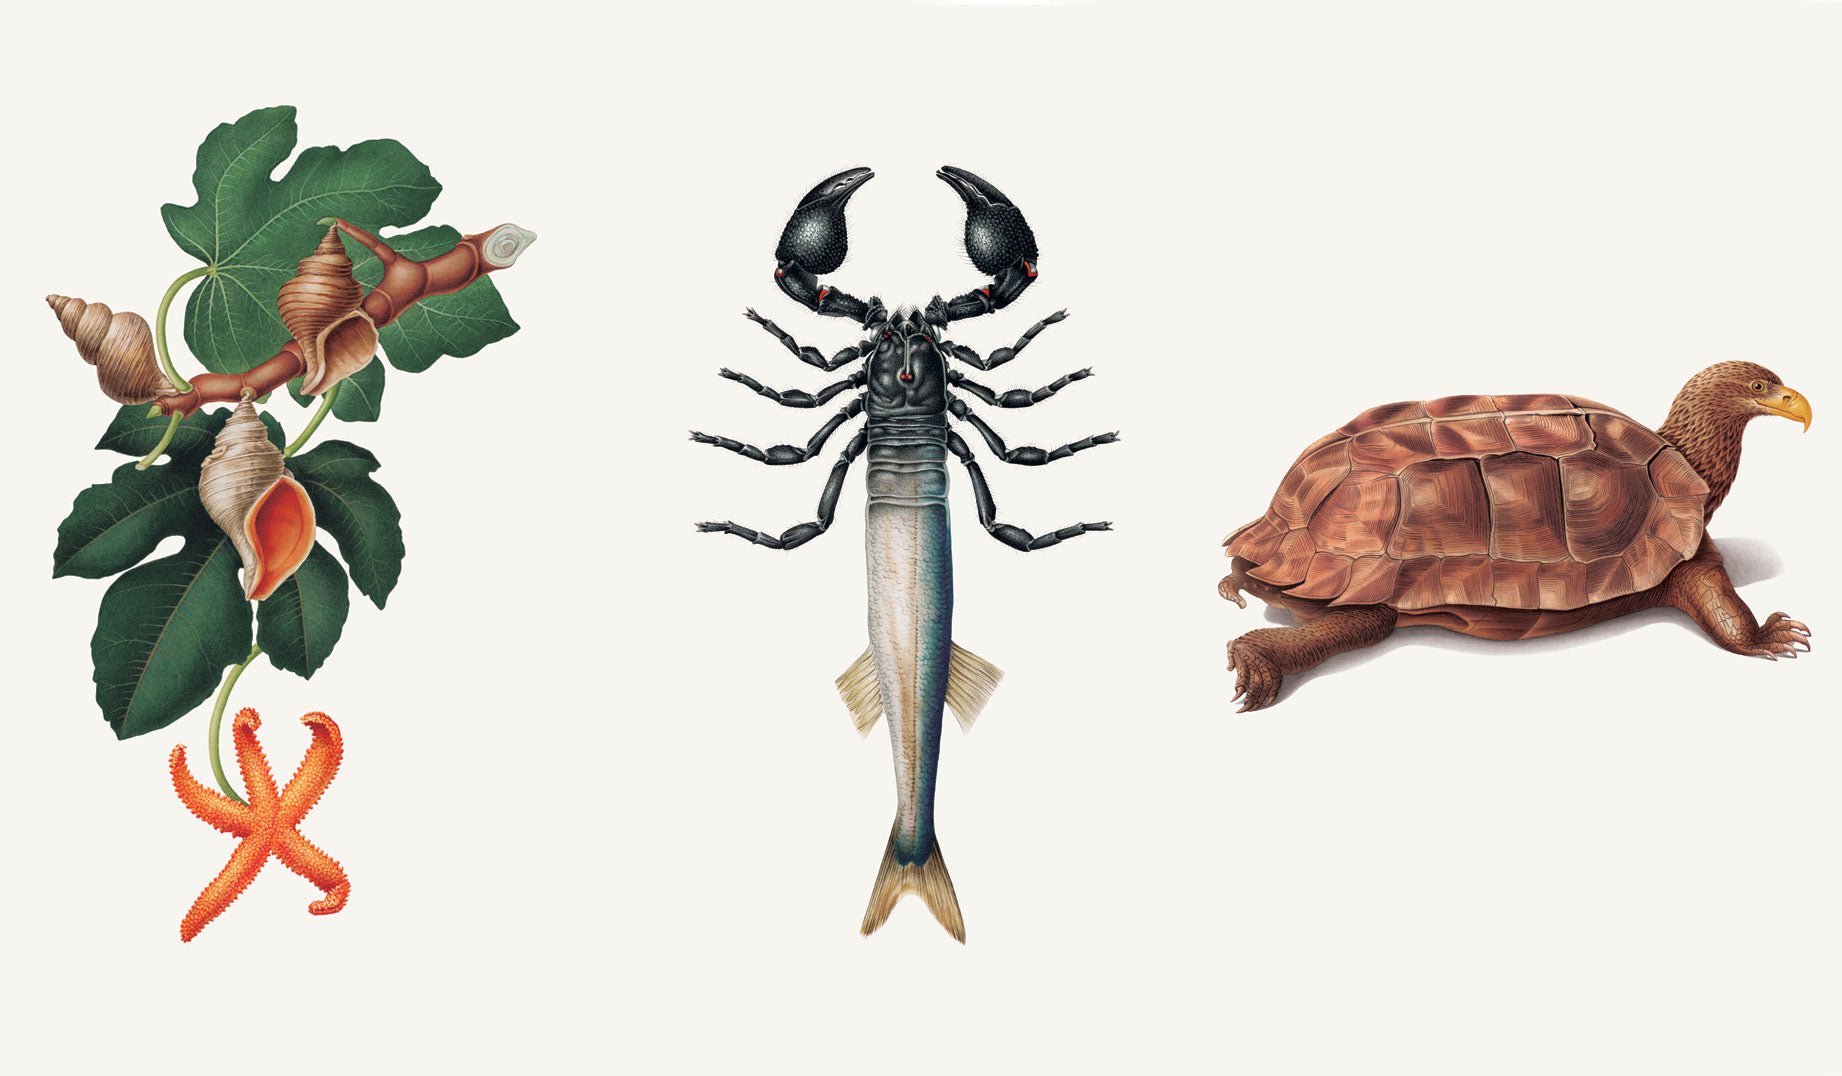 Communicatorum Claritus (starfish), Versatilum Adaptae (fish), and Purposo Careerus (turtle)